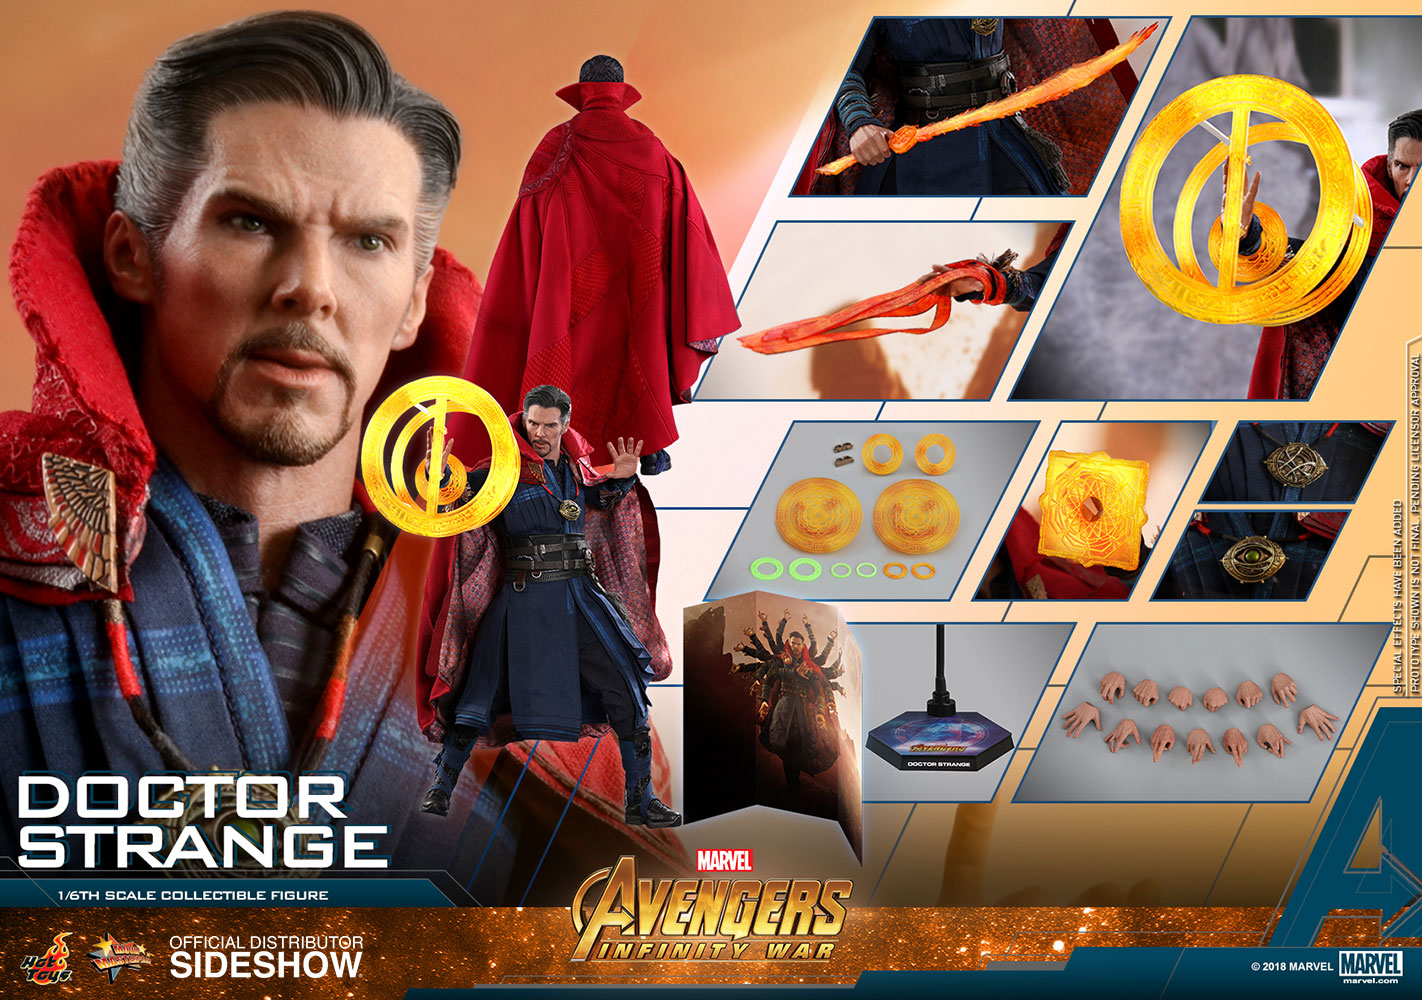 Hard-Working The Avengers Super Hero Marvel Doctor Strange Iron Studios Figure Action Pvc Collectible Model Toy Fashionable Patterns Action & Toy Figures